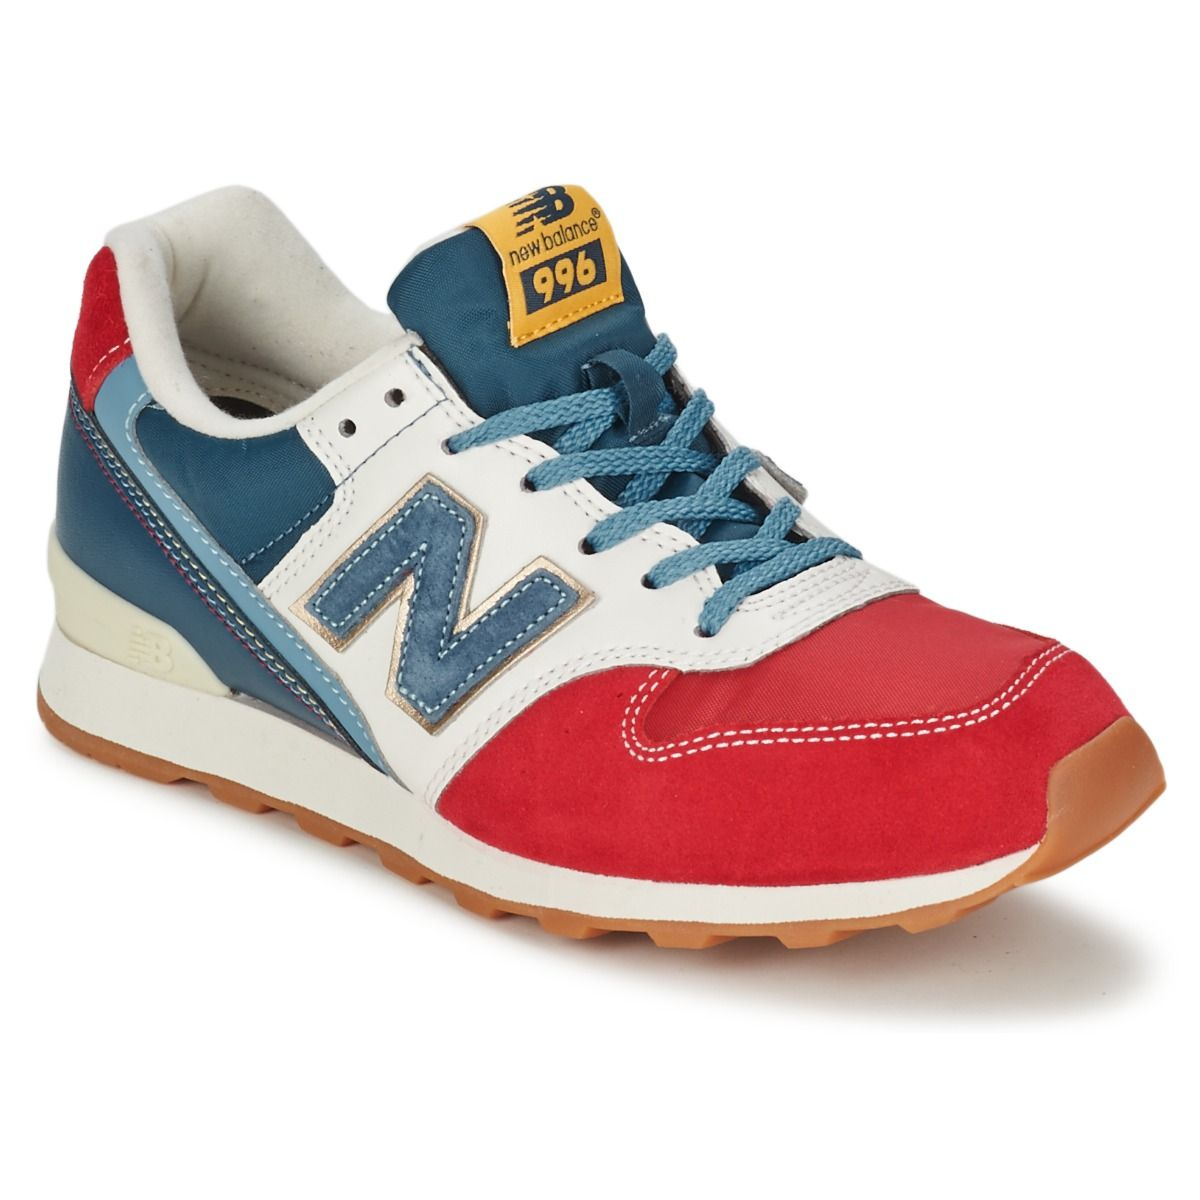 Baskets Femme Spartoo, promo Baskets basses New Balance WR996 Blanc ...